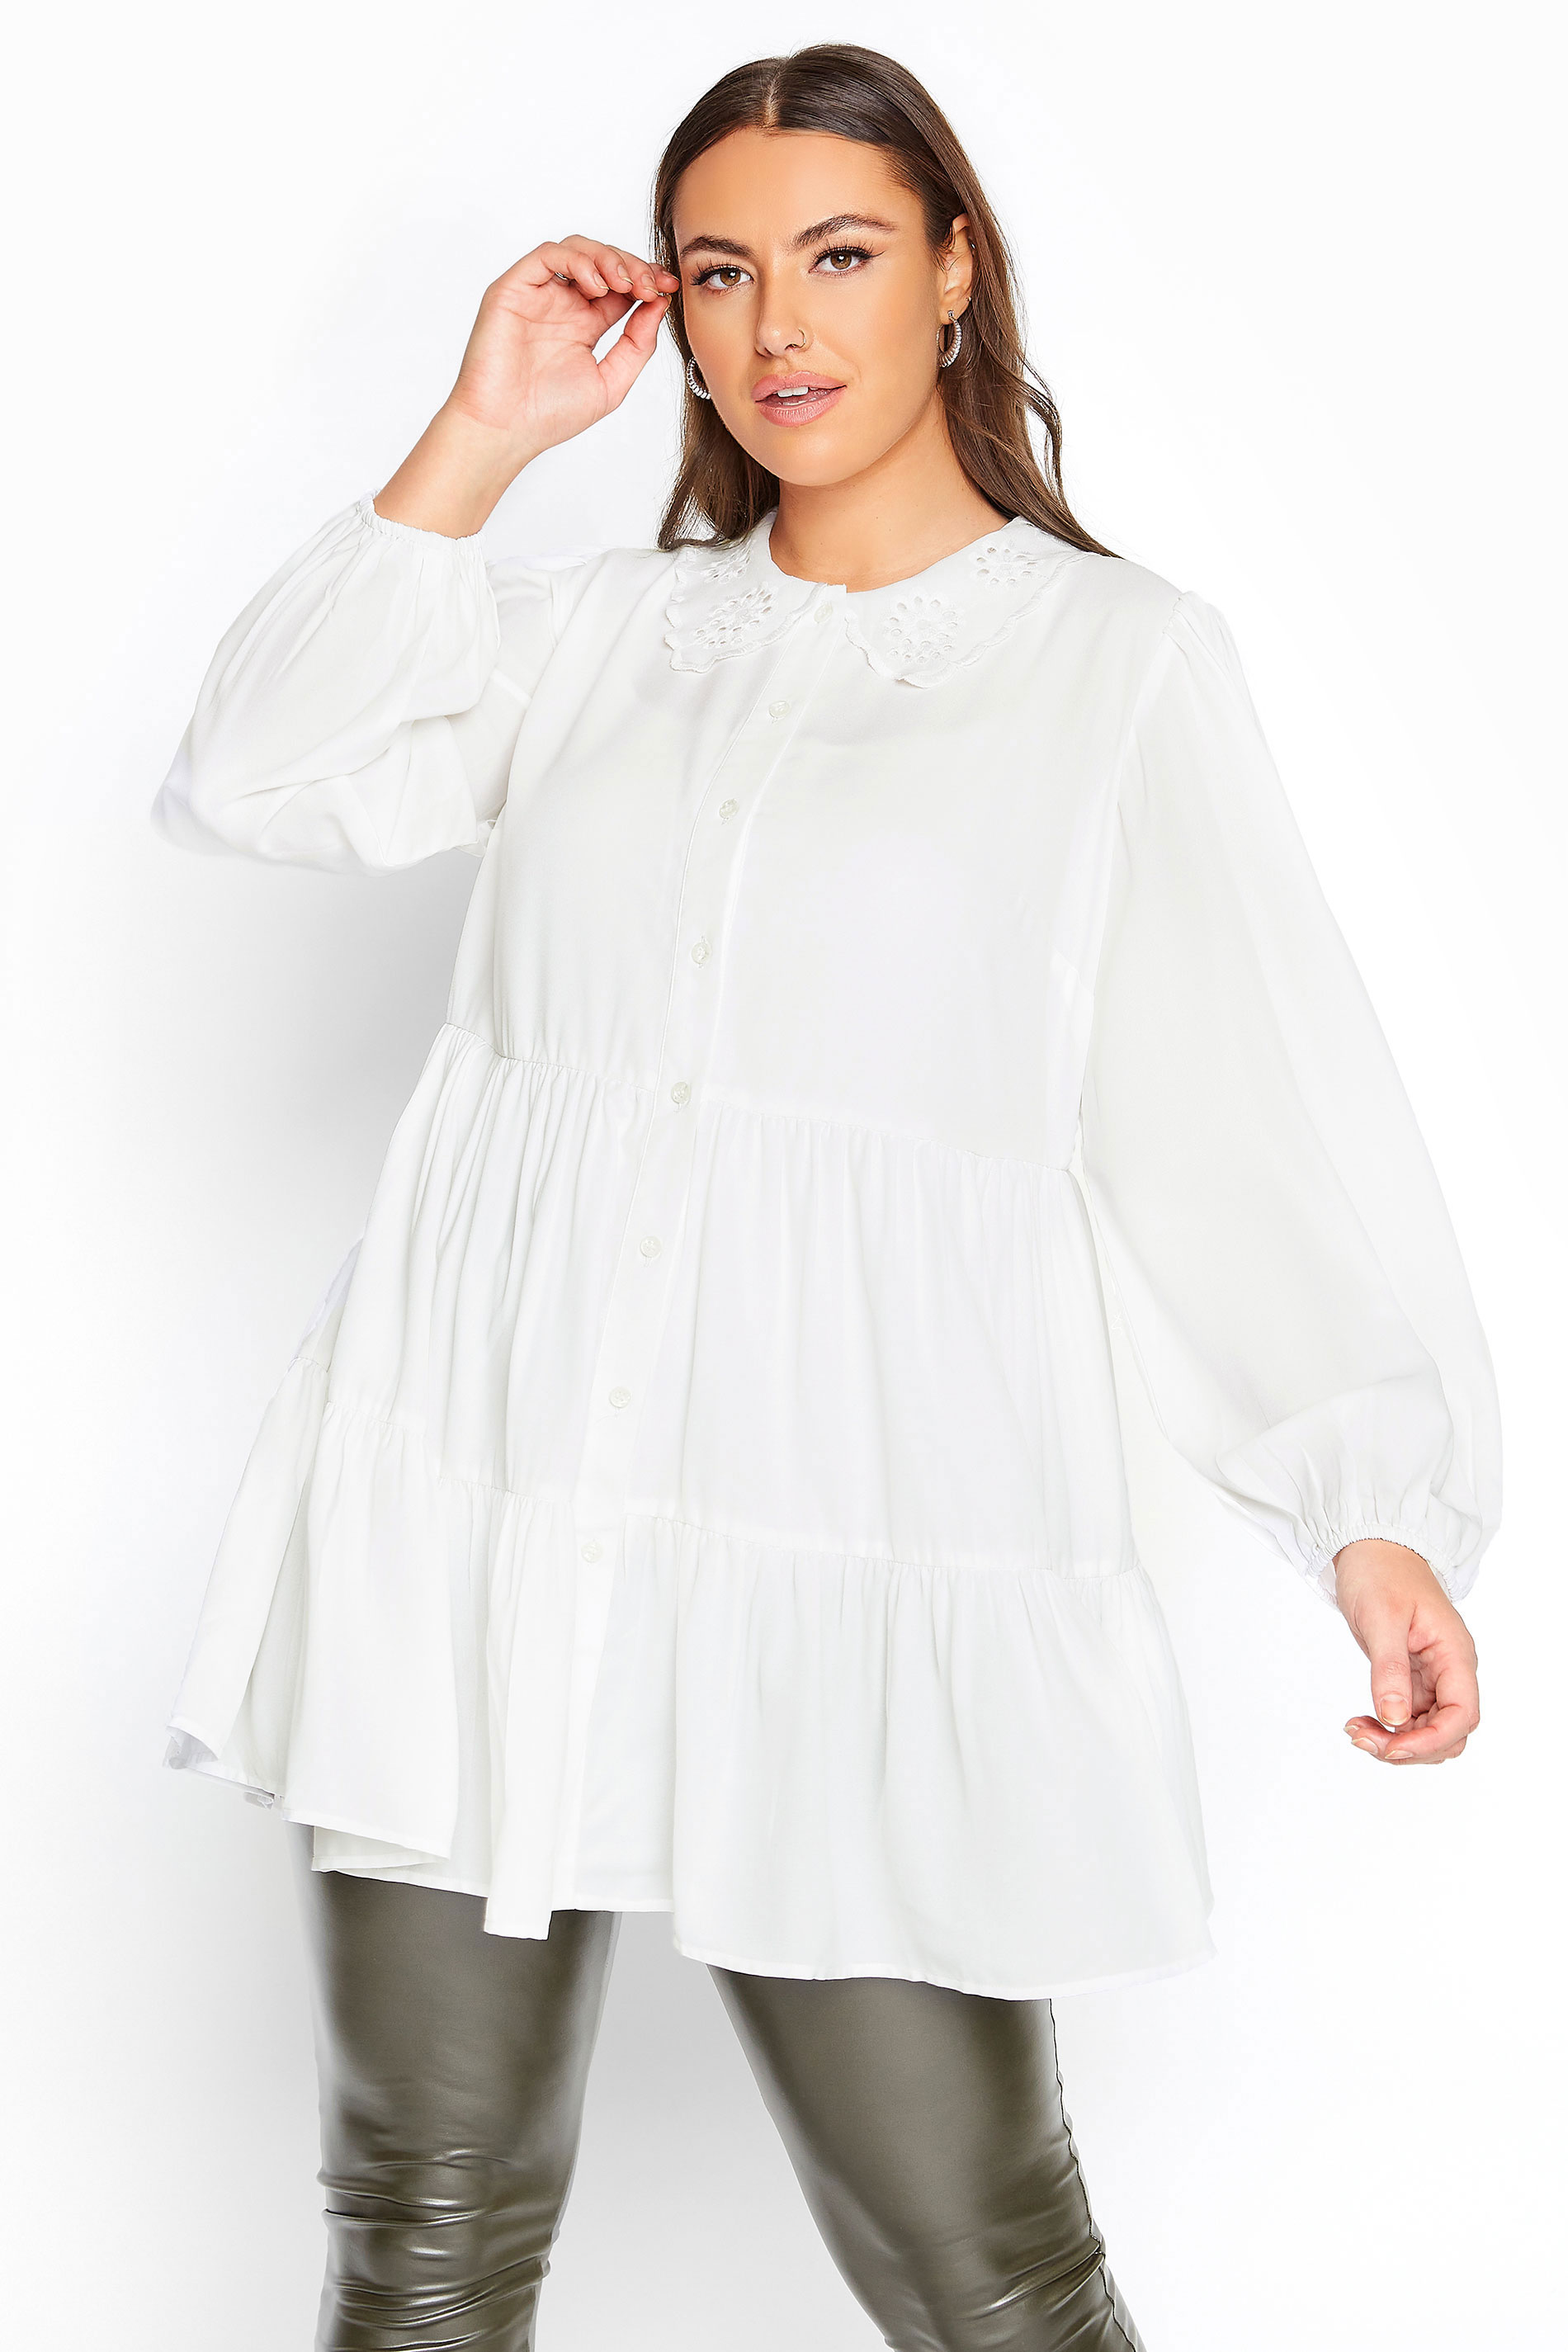 LIMITED COLLECTION White Embroidered Collar Tiered Hem Shirt